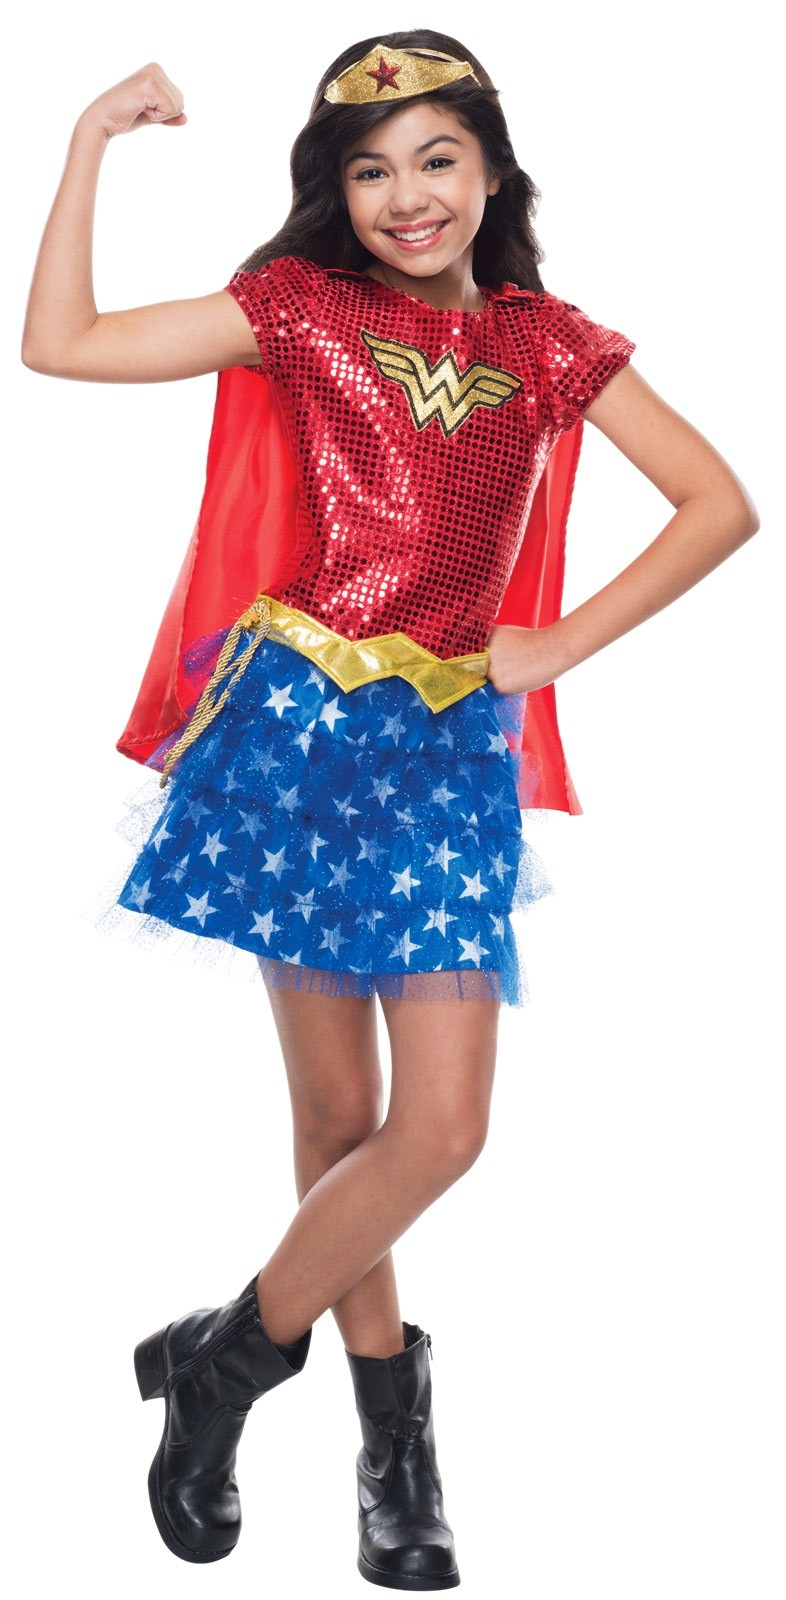 The Justice League DC Comics Wonder Woman Child Costume is the perfect Halloween costume for you. Show off your Girls costume and impress your friends with this top quality selection from Costume SuperCenter!5/5(1).